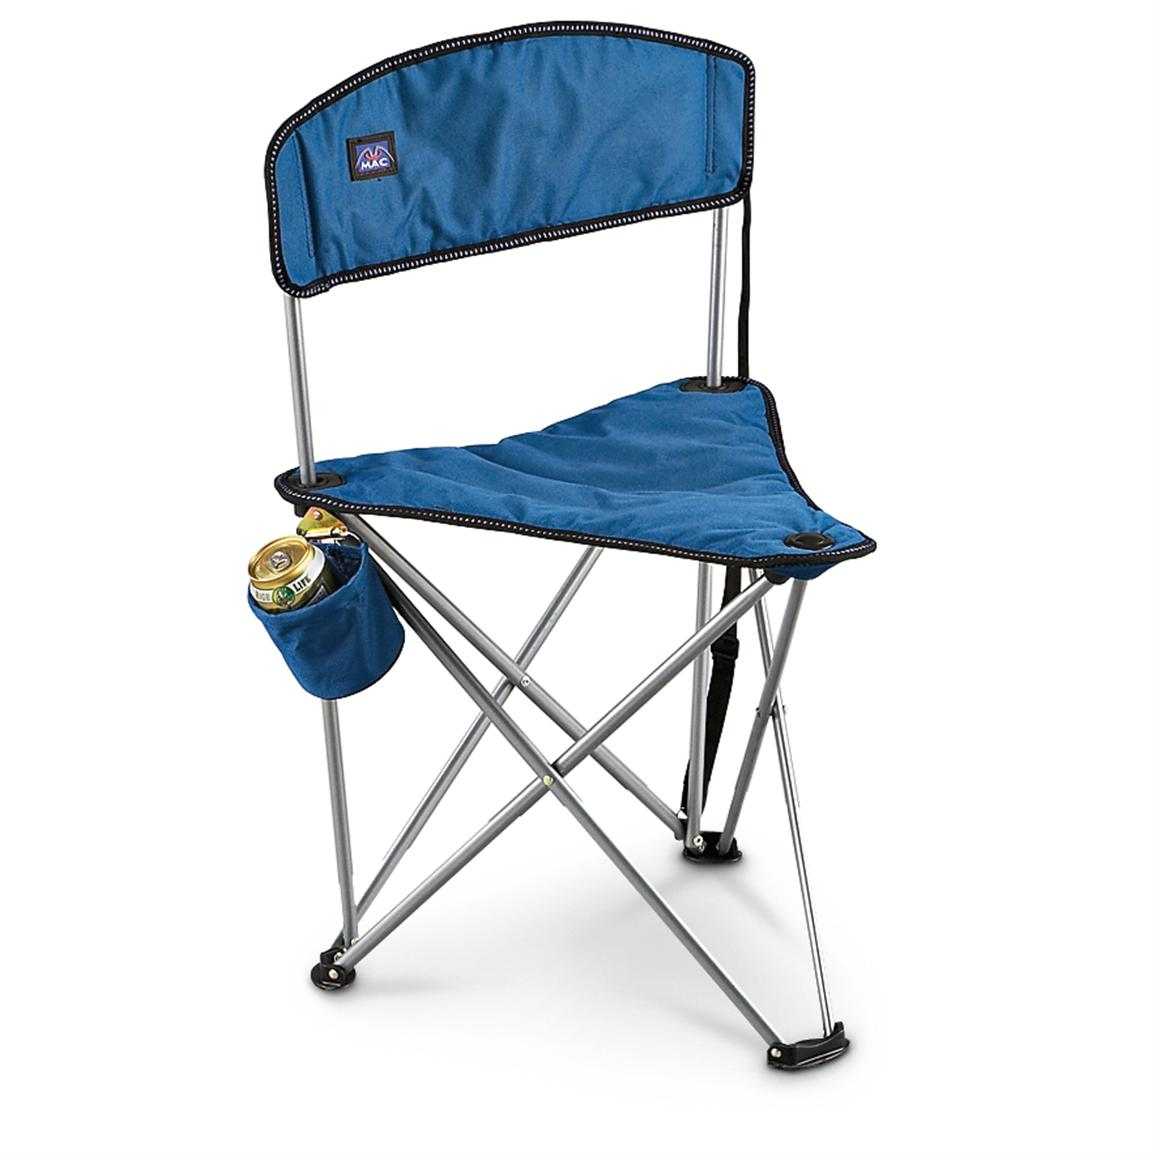 Mac Sports 174 Padded Tripod Chair 174813 Chairs At